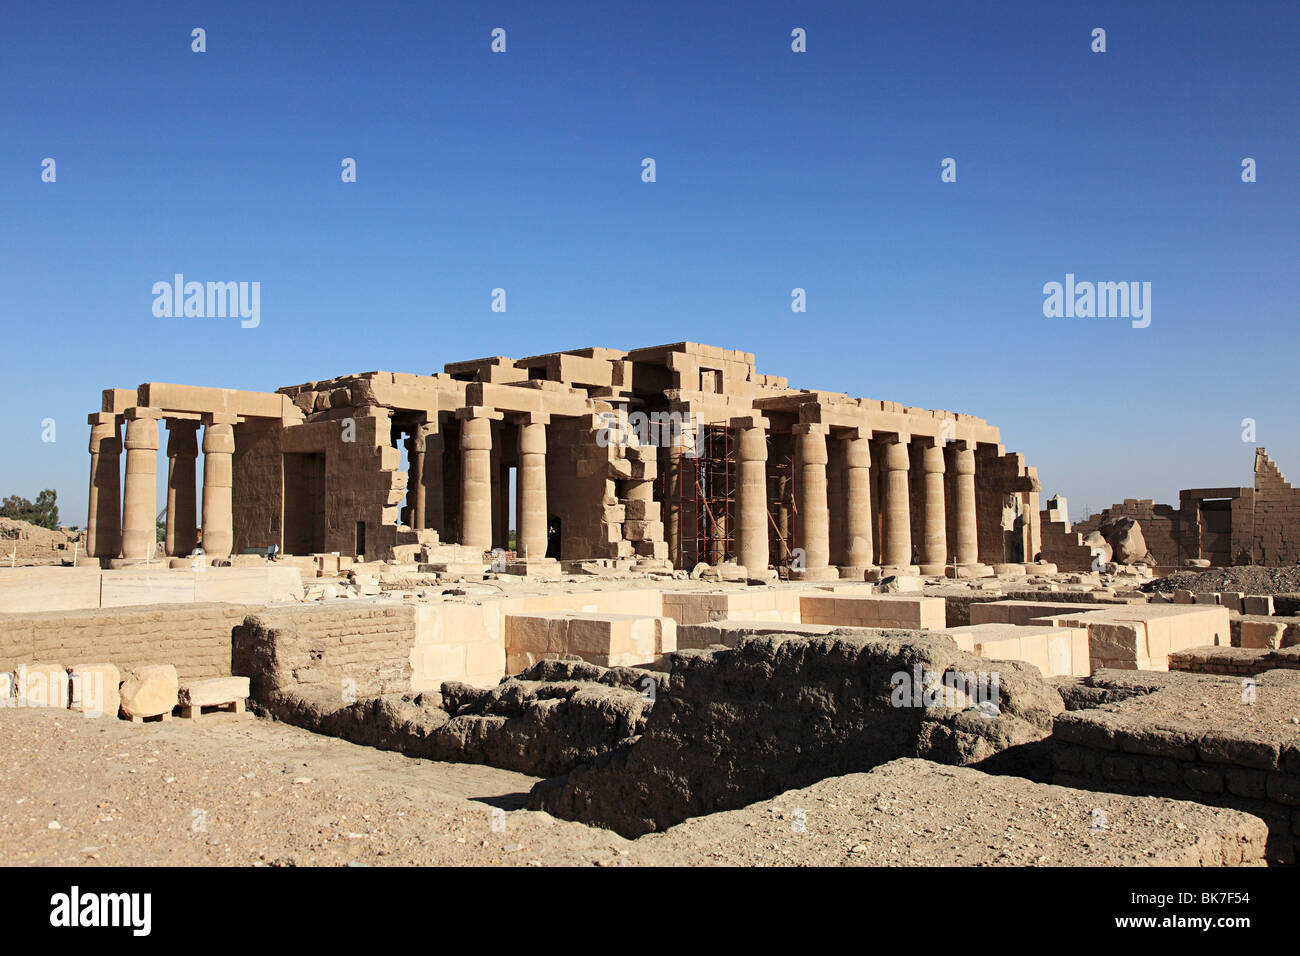 Ramesseum temple egypt - Stock Image